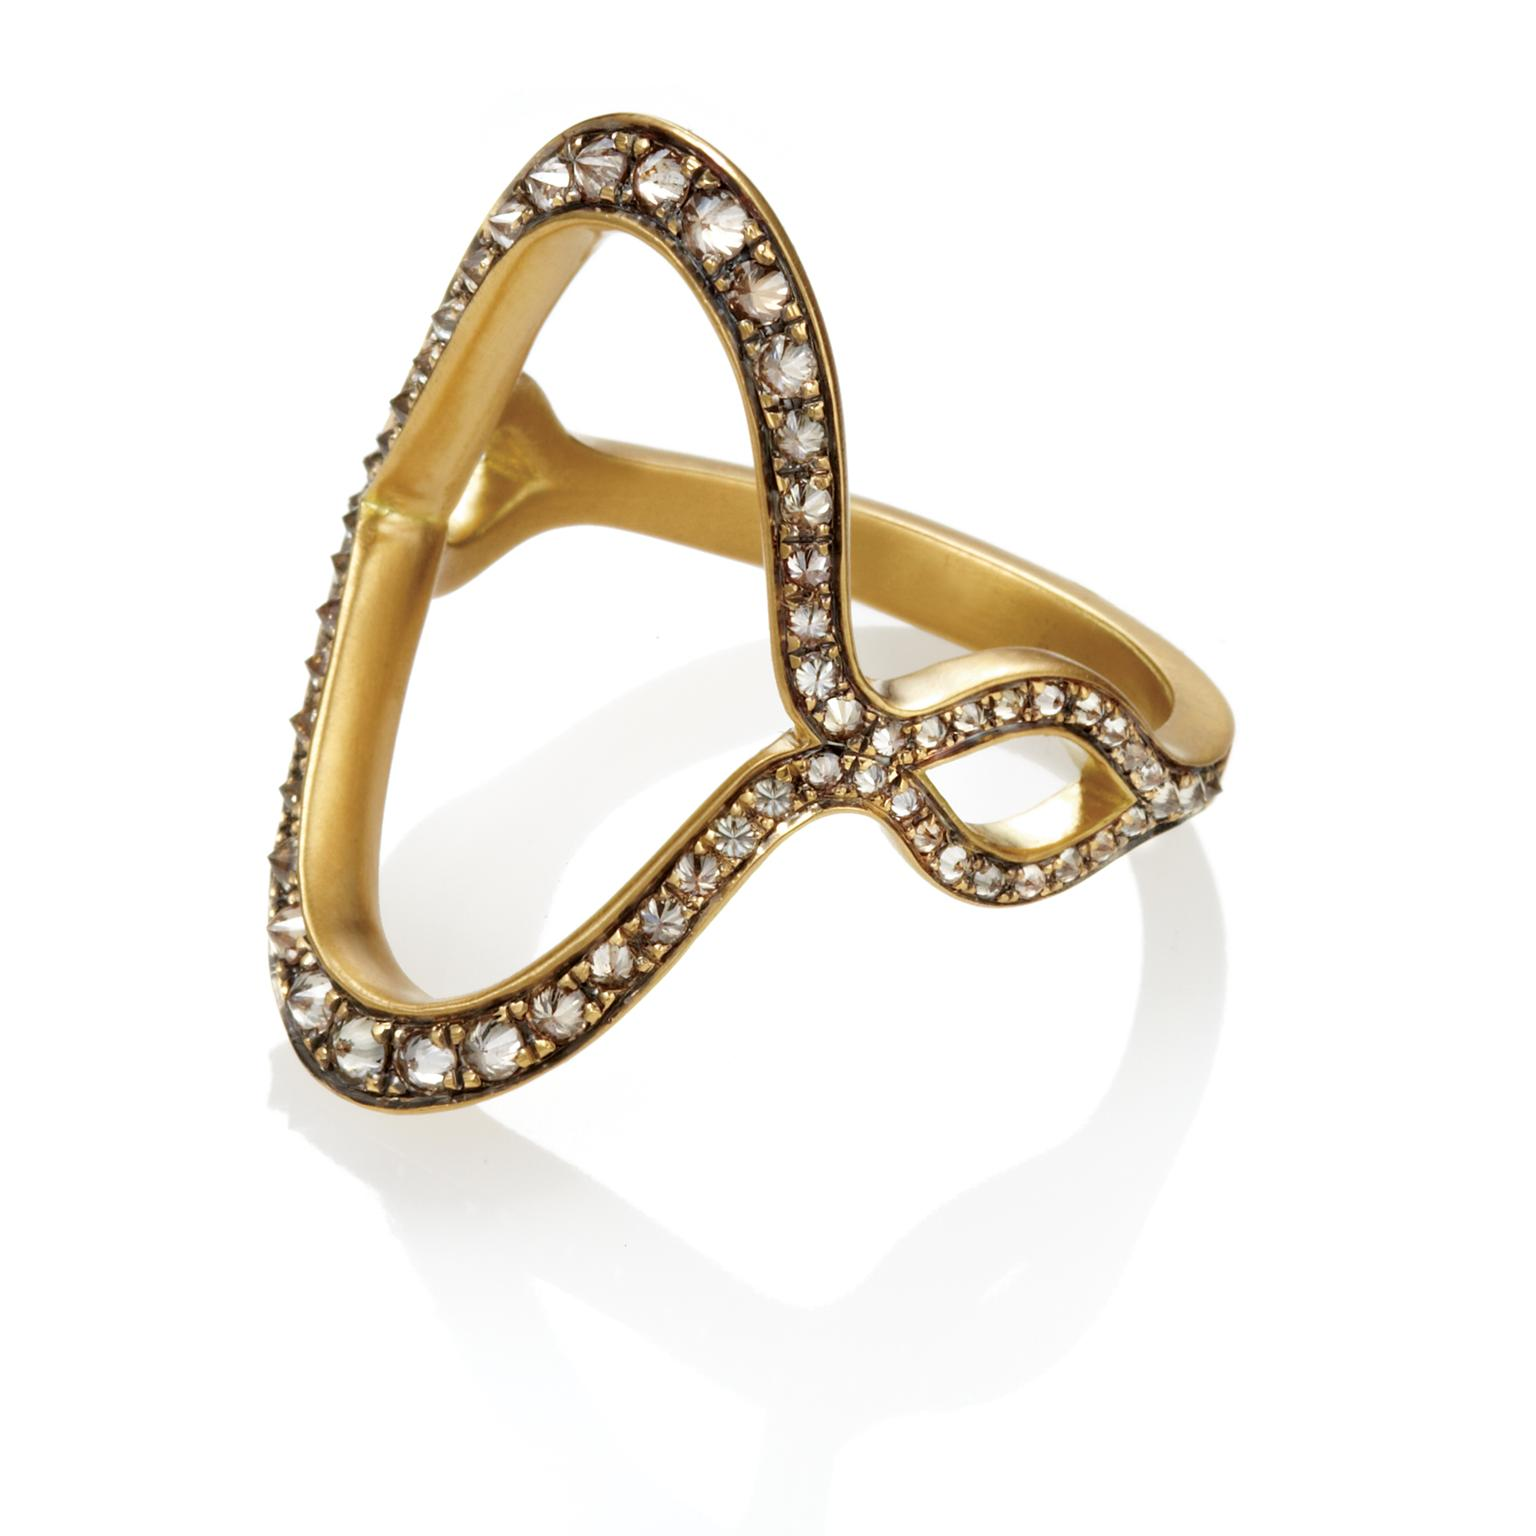 Anahita Jaws diamond ring